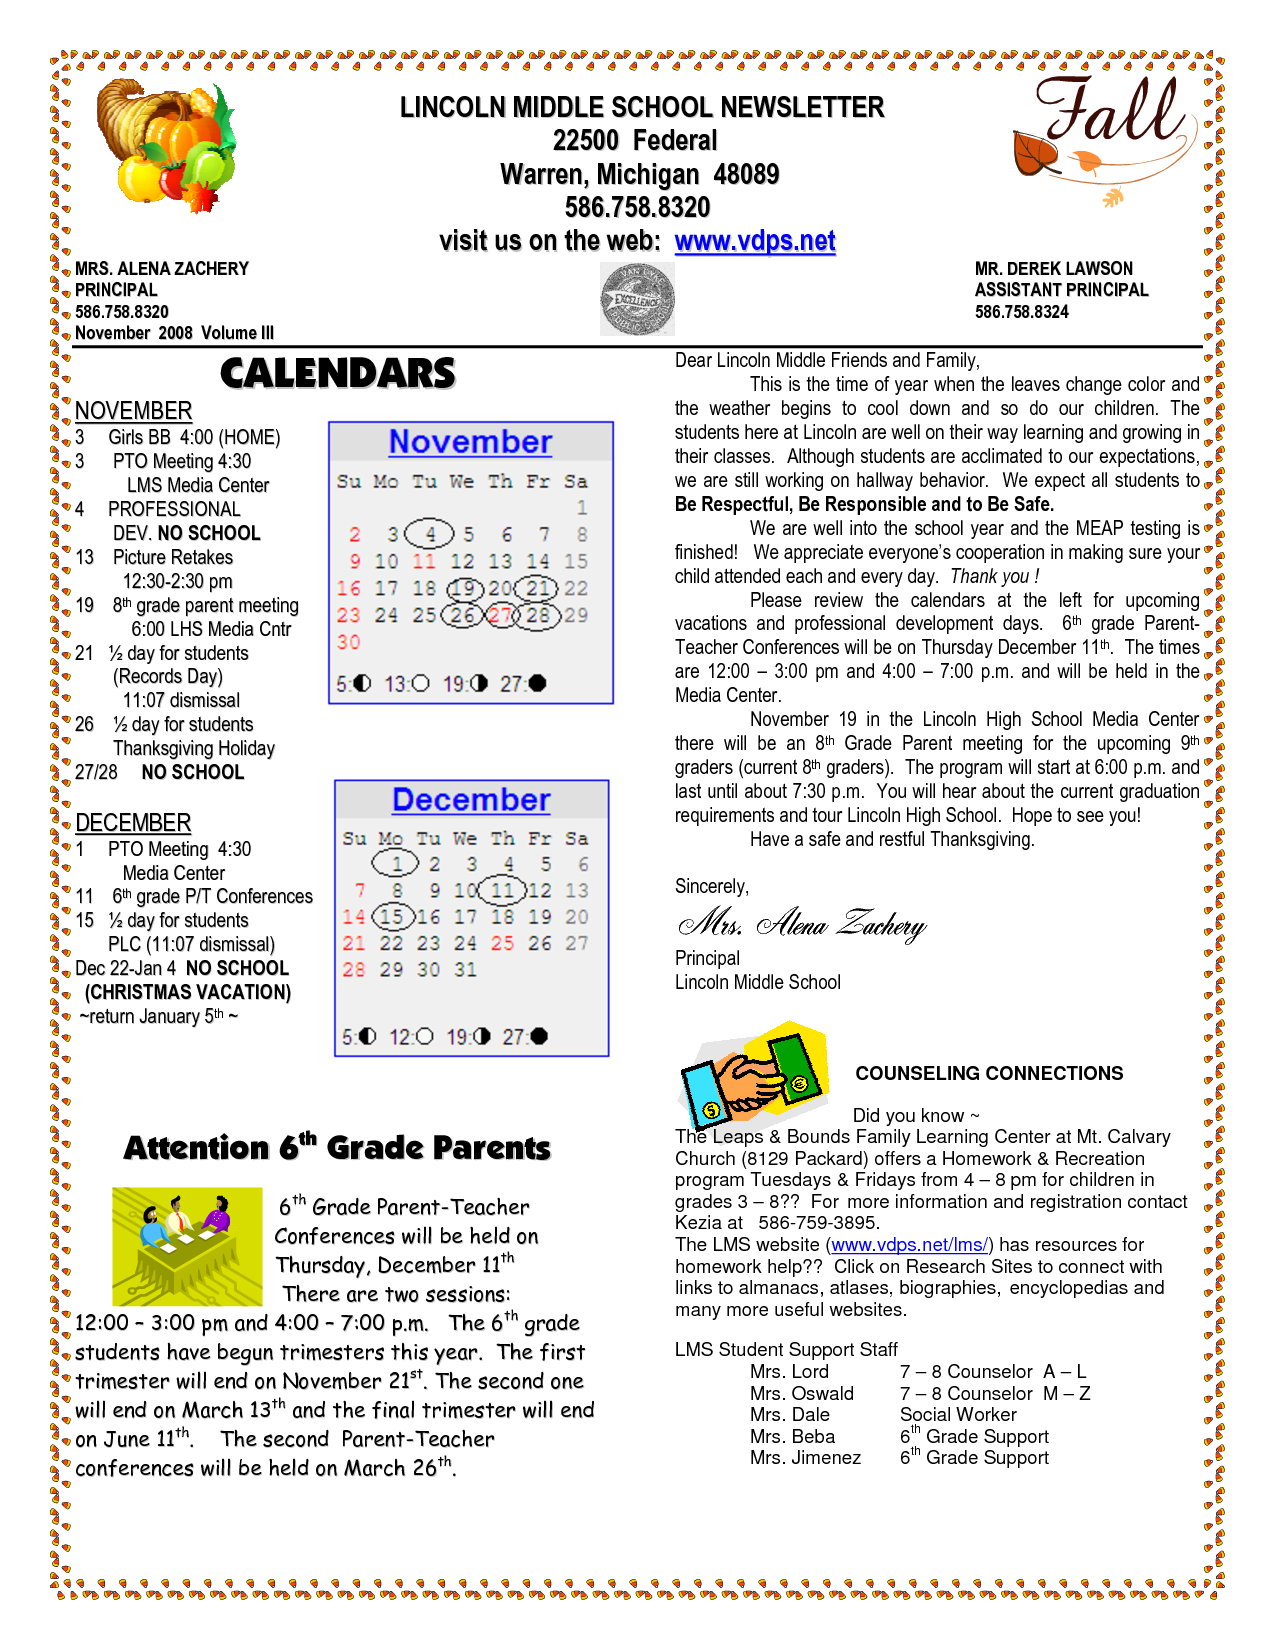 School Newsletter Templates  Lincoln Middle School Newsletter